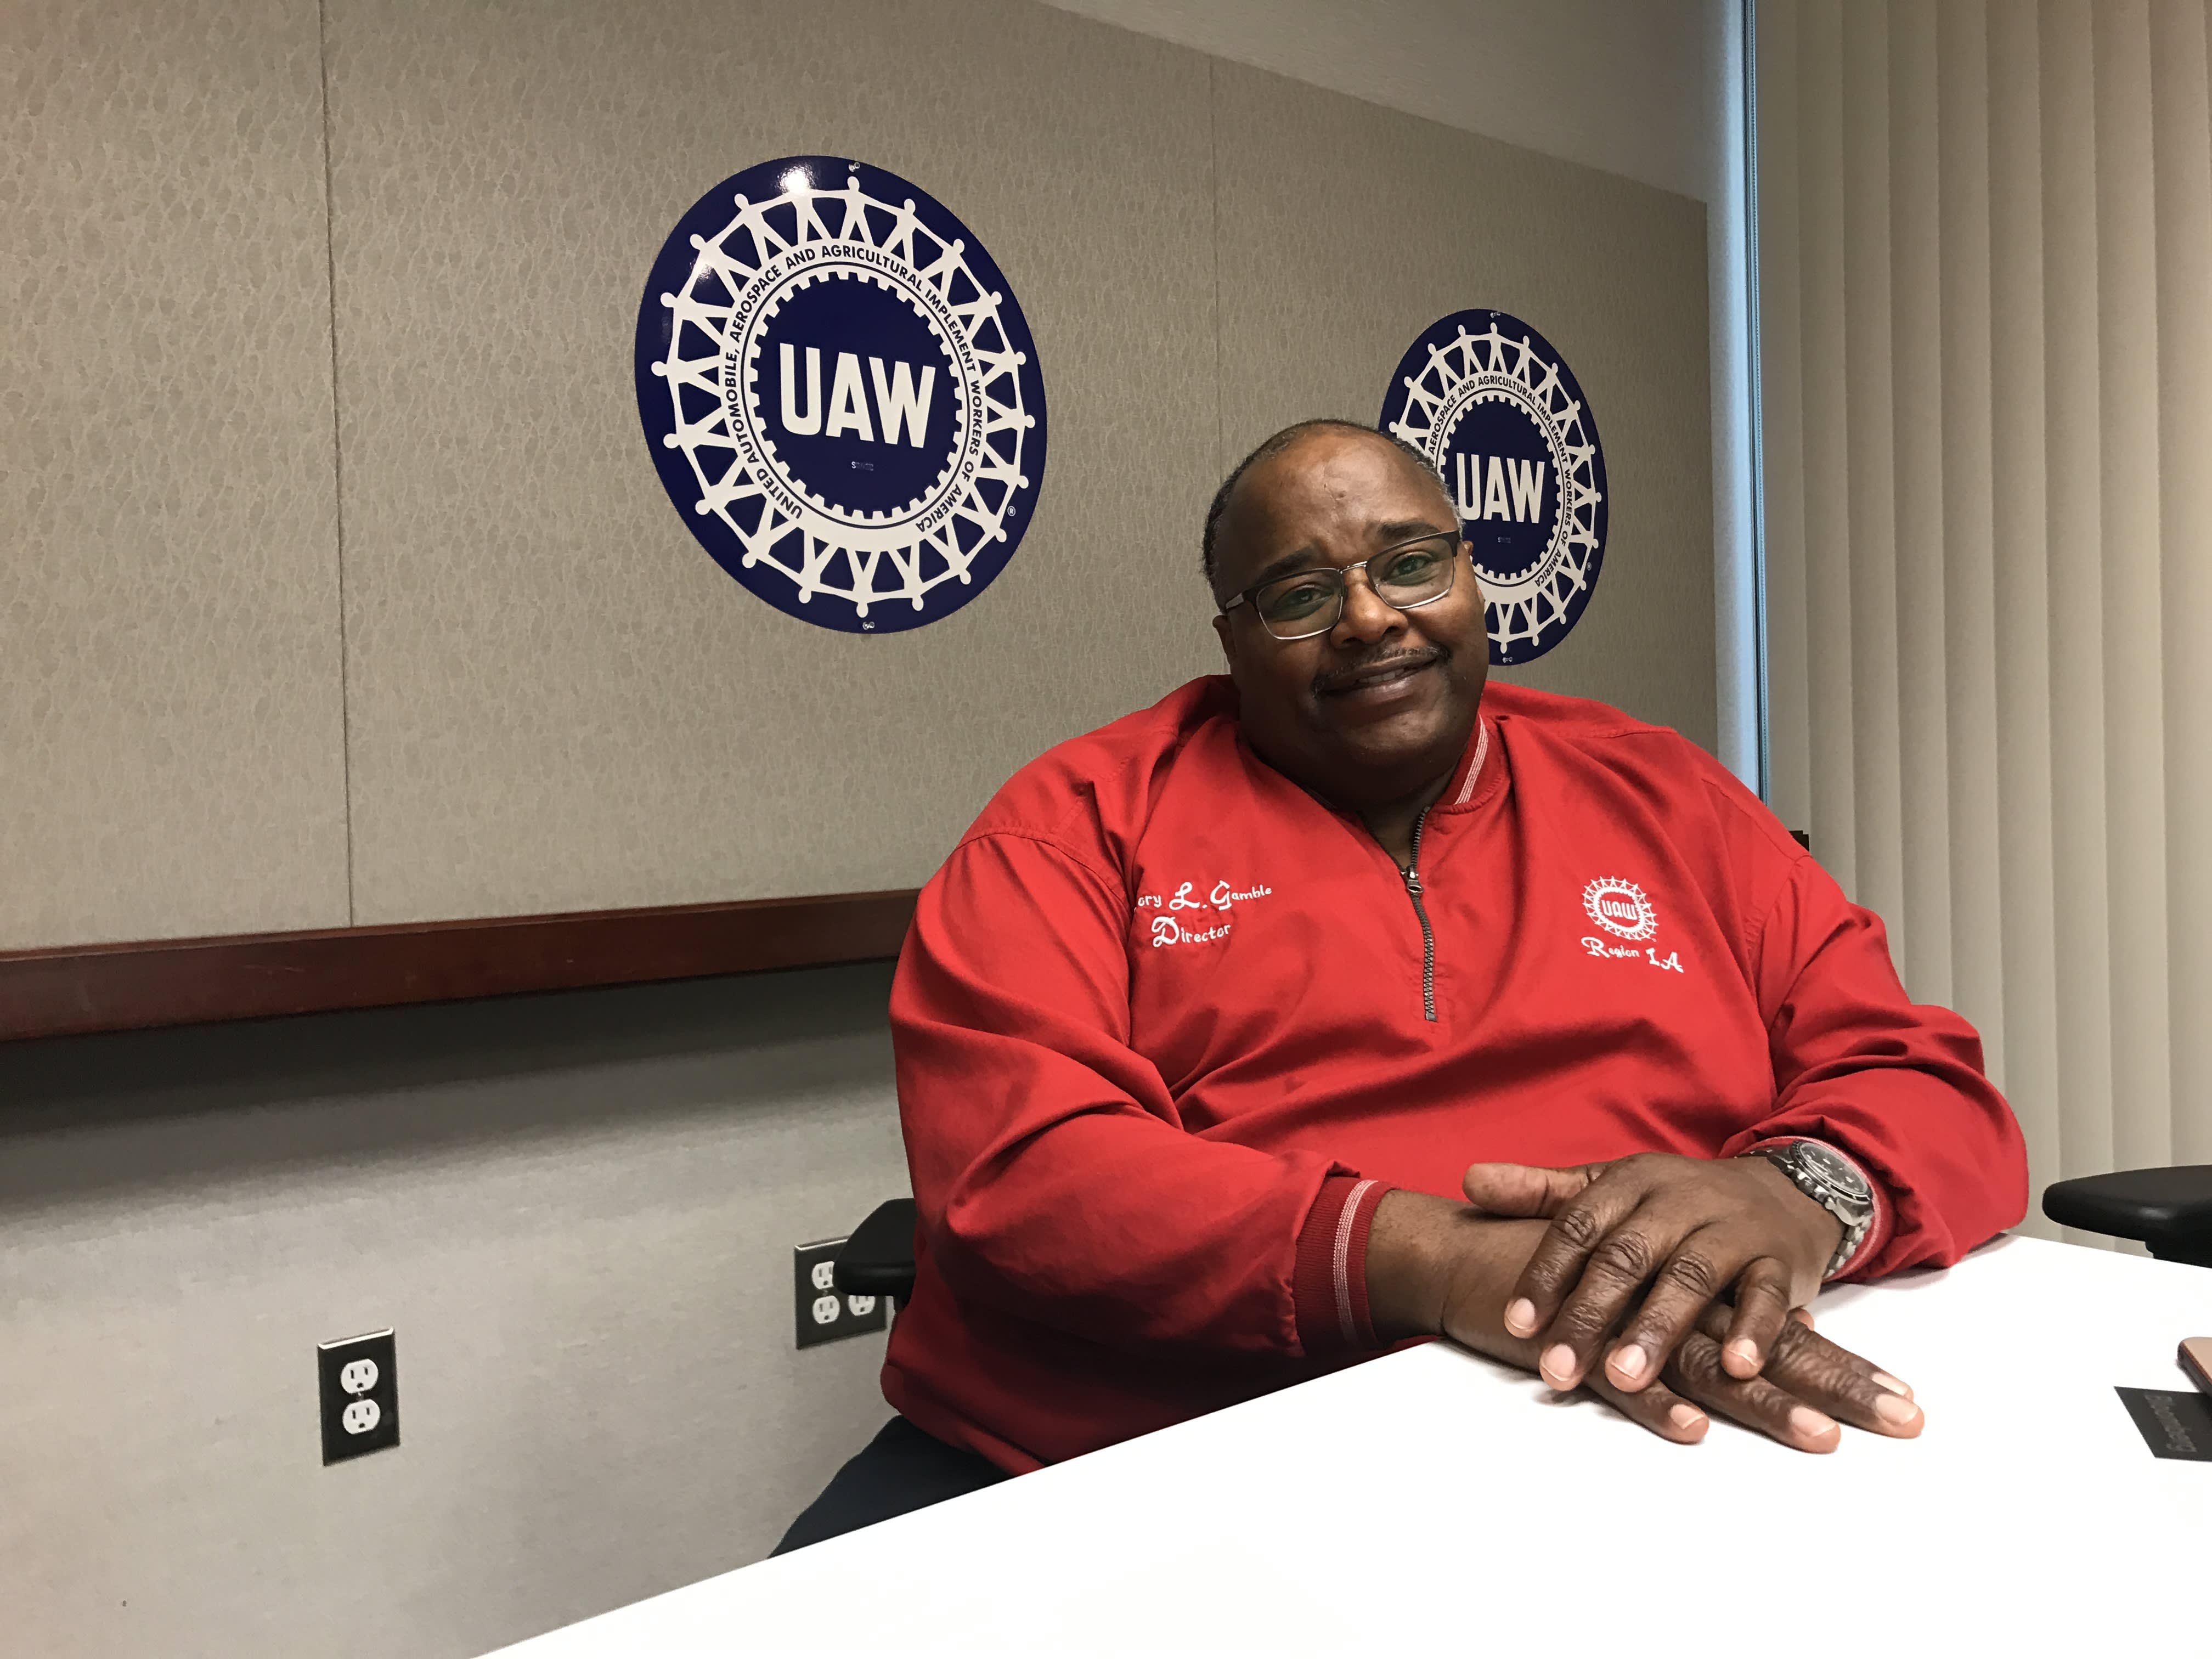 Acting UAW president concerned about RICO, says he's 'confident' current board is clean